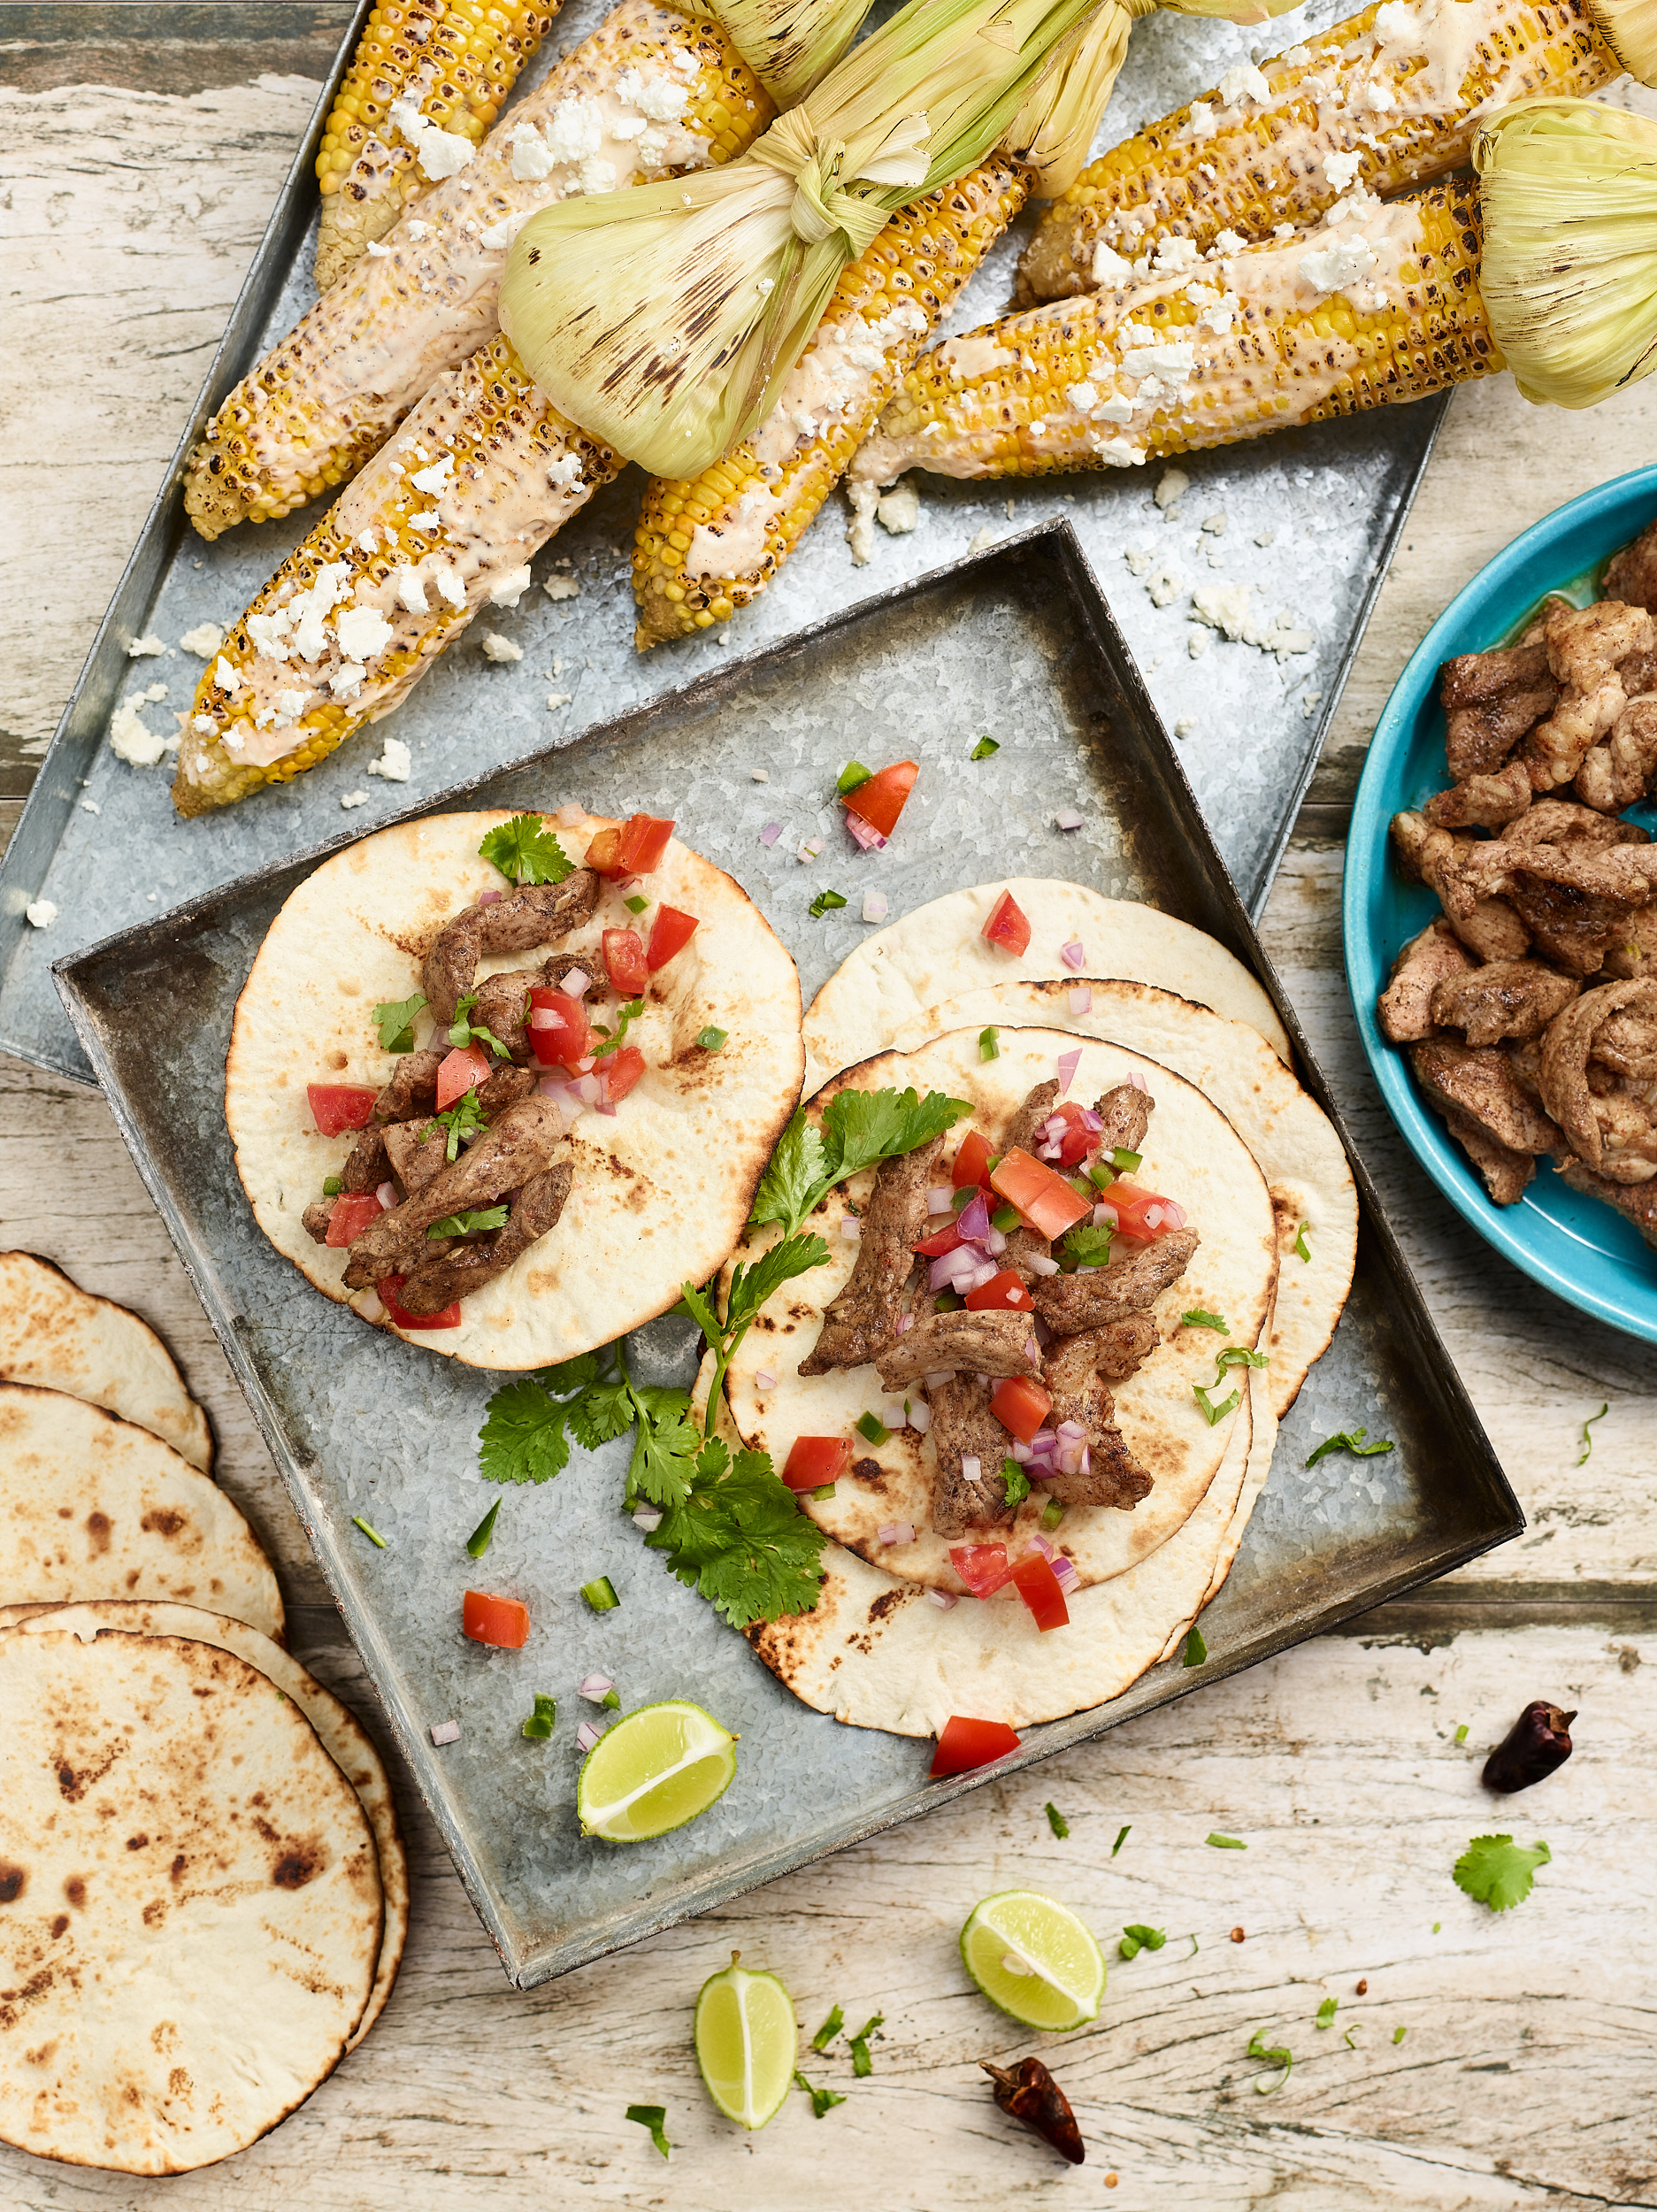 Sizzling Pork Tacos with Mexican Elote